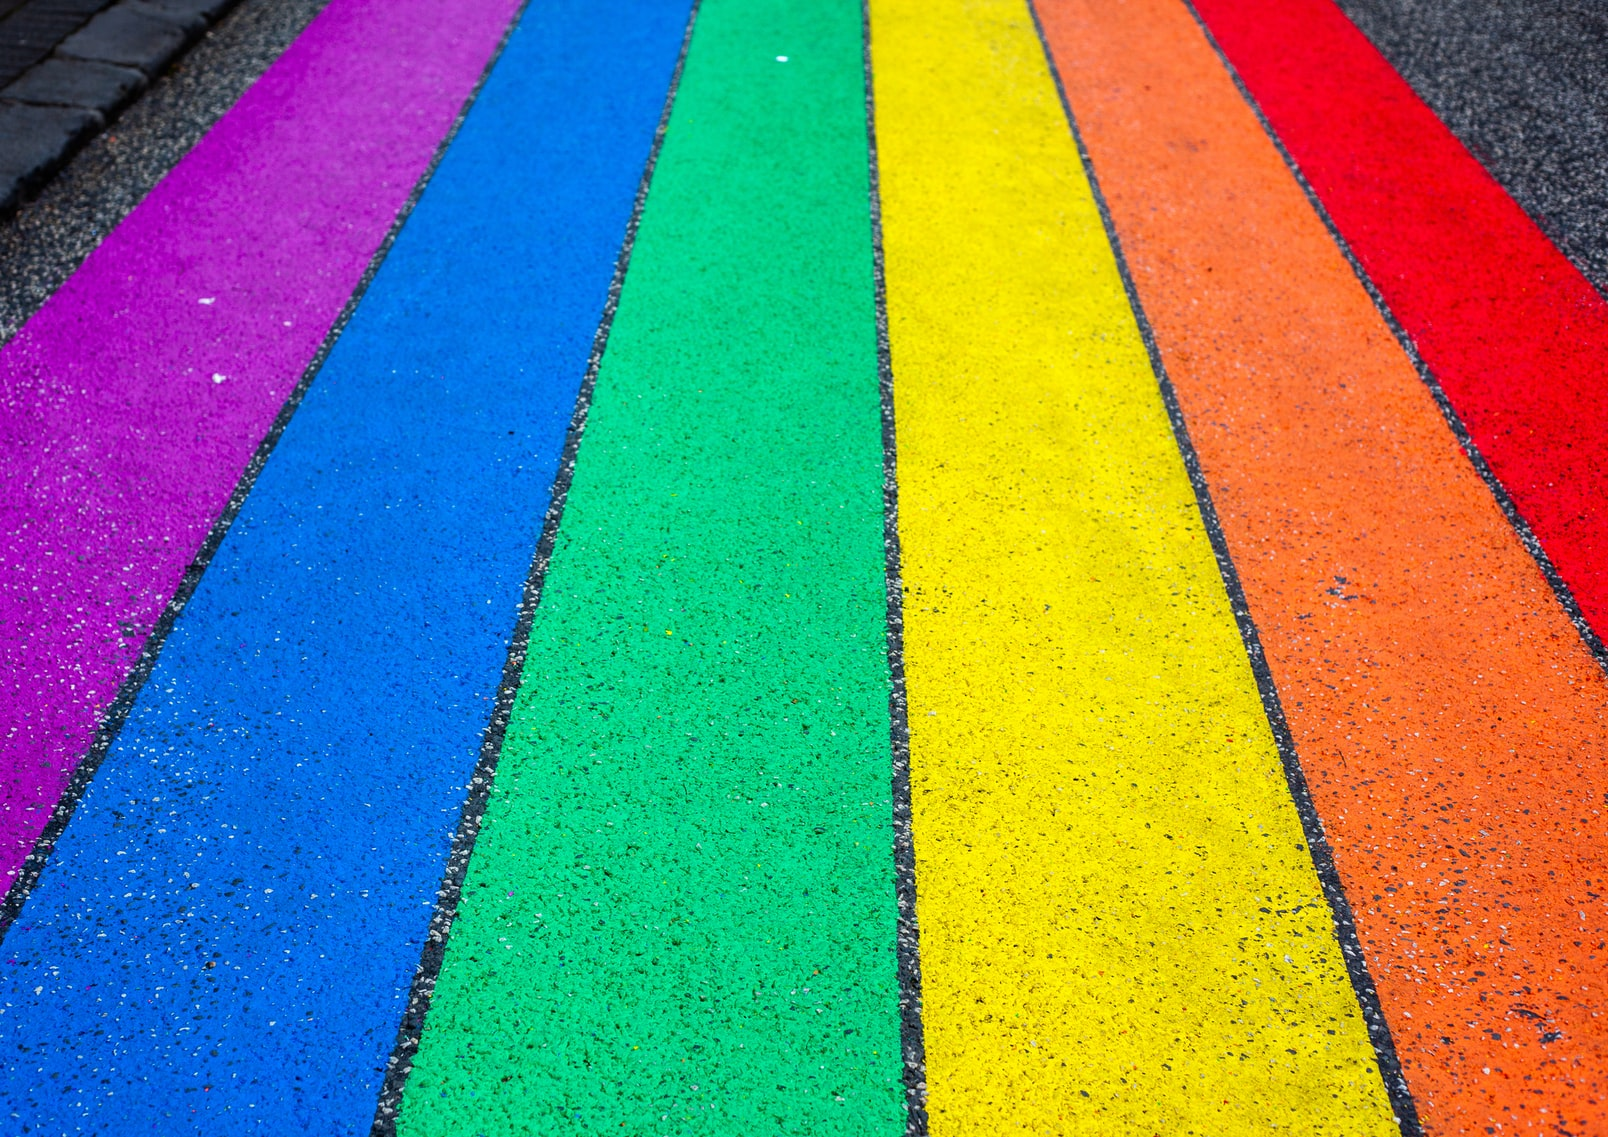 Multicolored striped painted homosexual surface